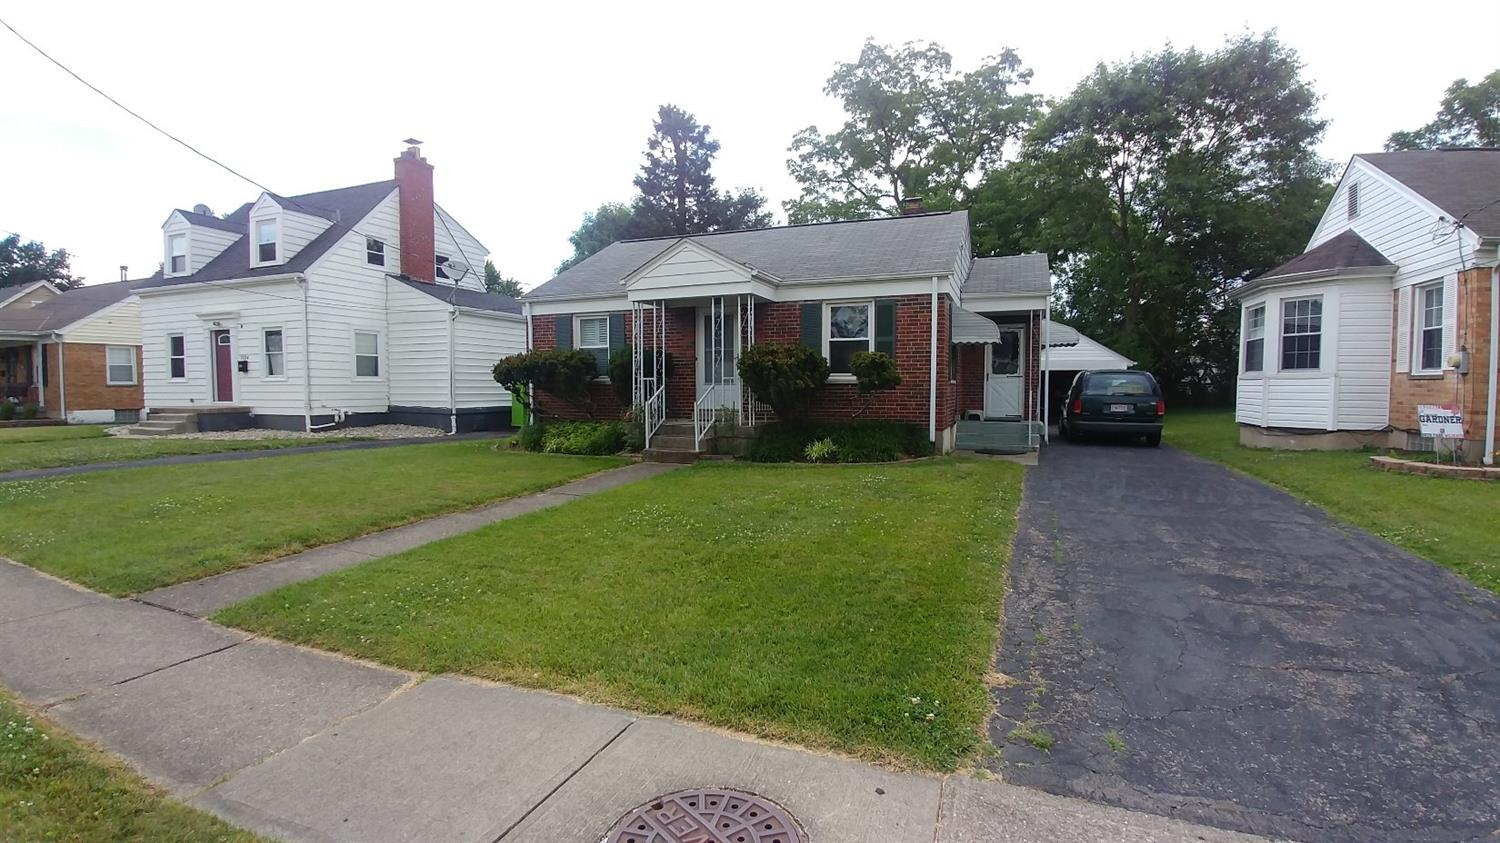 Property for sale at 7720 Monticello Avenue, Deer Park,  Ohio 45236